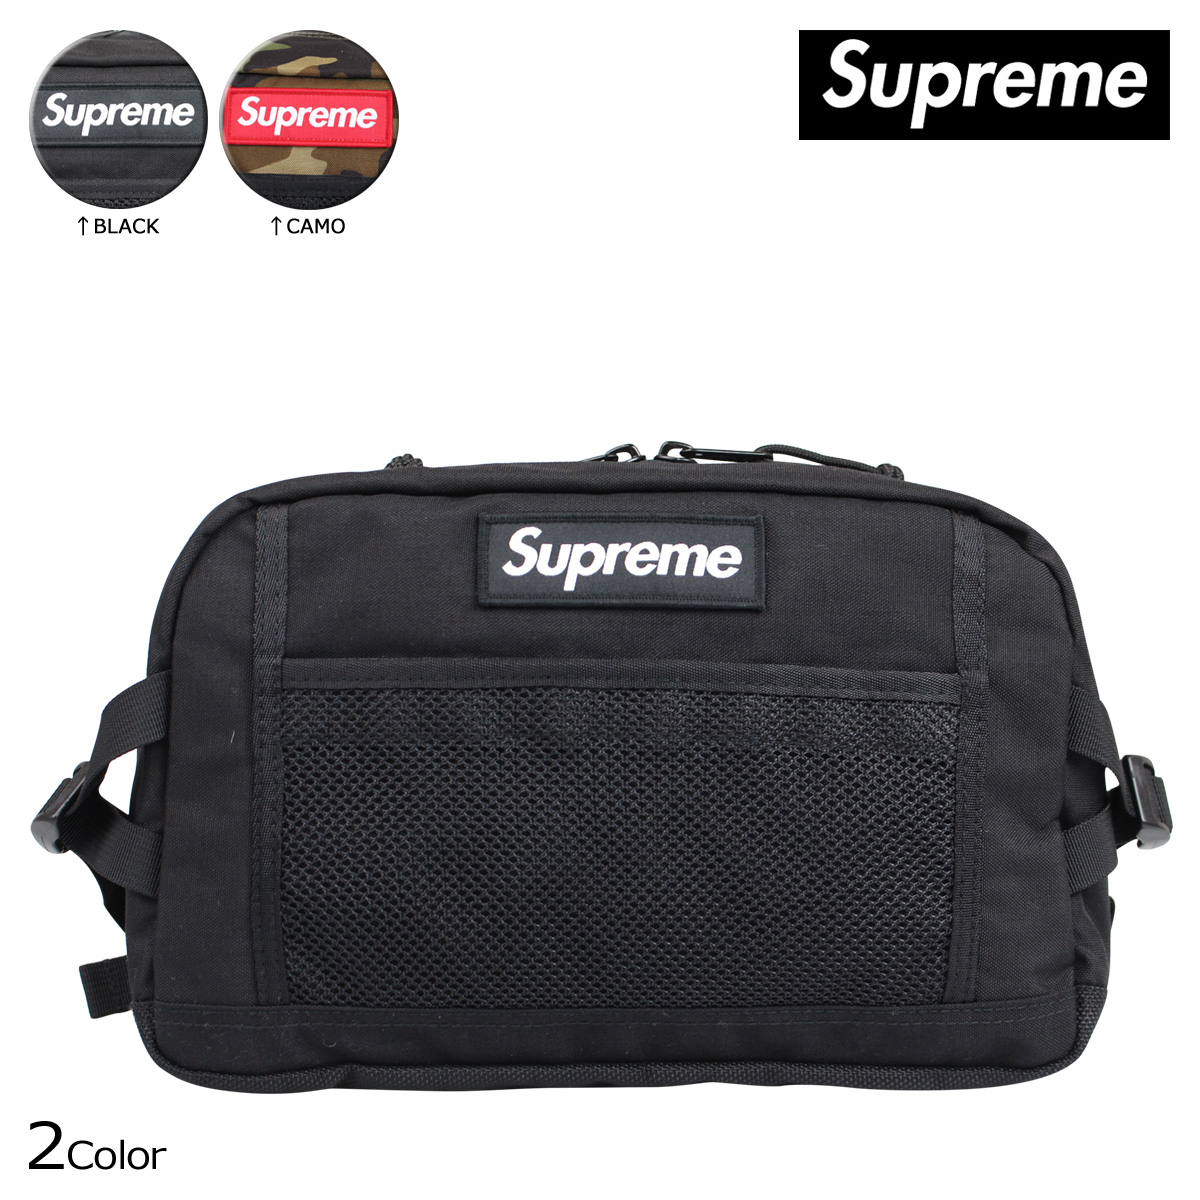 Supreme Supreme men's hip bag waist bag Shoulder bag 2 colors CONTOUR HIP BAG [11 / 20 new in stock]